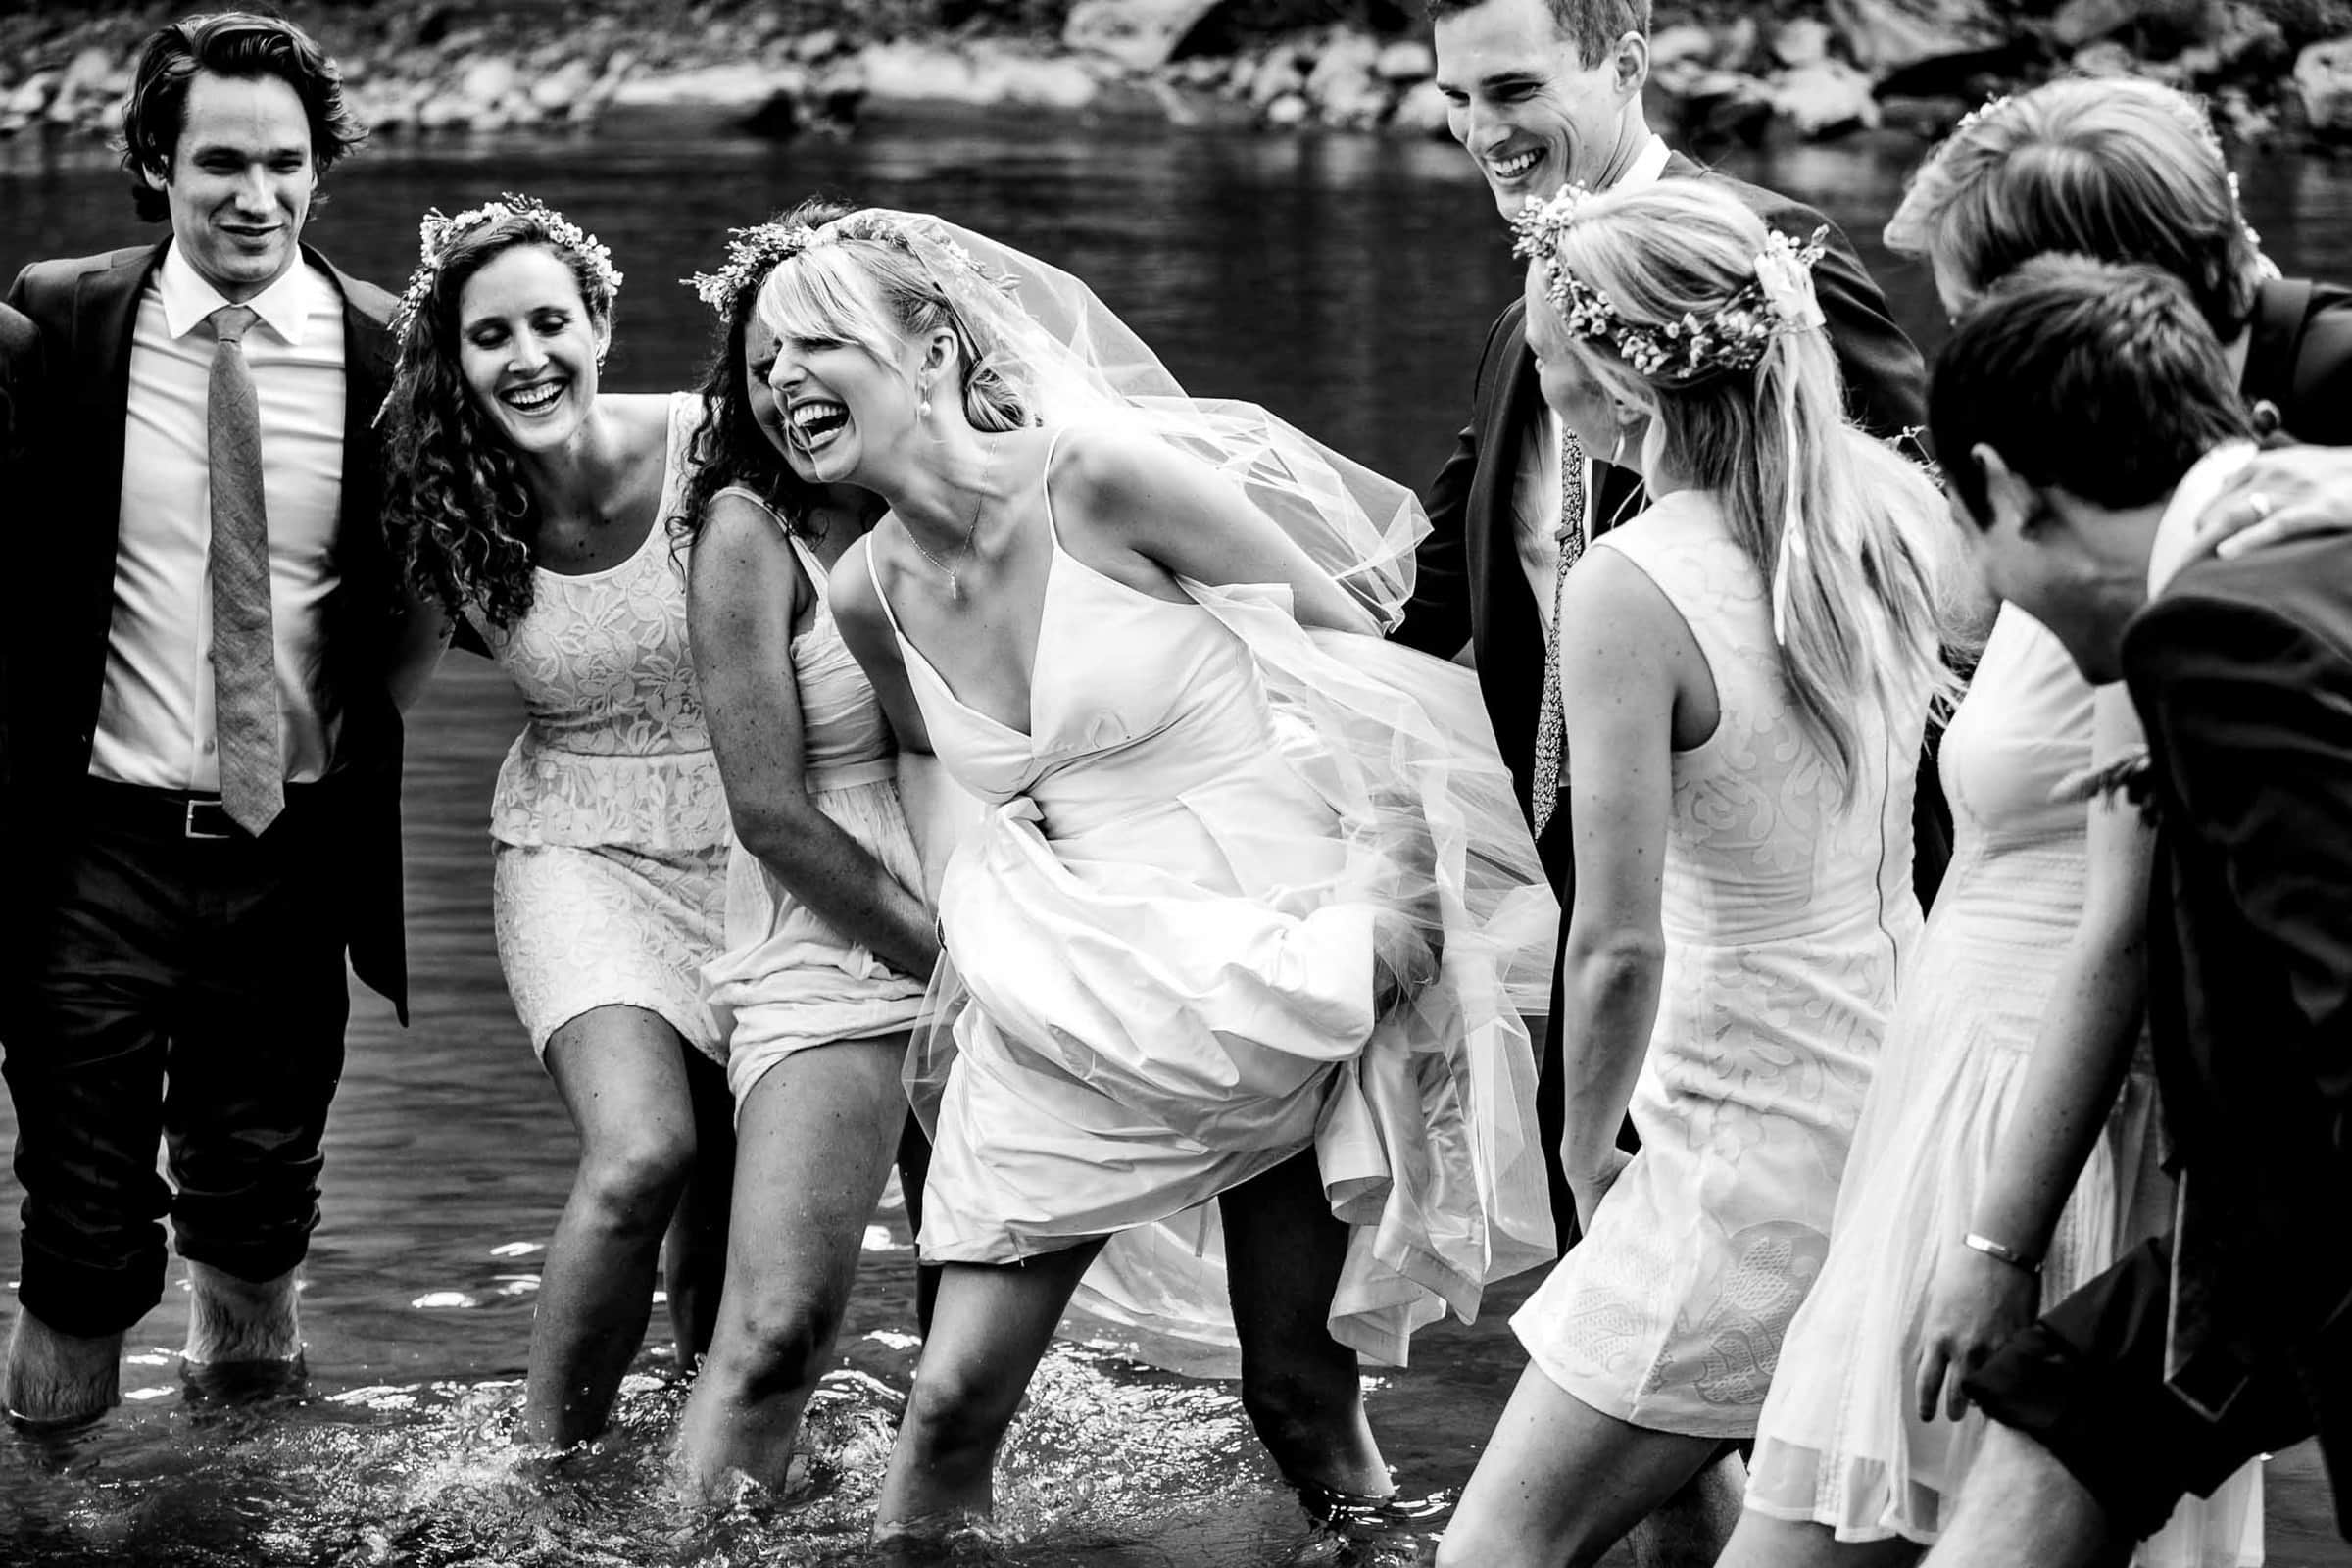 Award winning wedding photo of bride laughing with friends in a river in Corbett Oregon at Camp Deangelos. Photo by josandtree